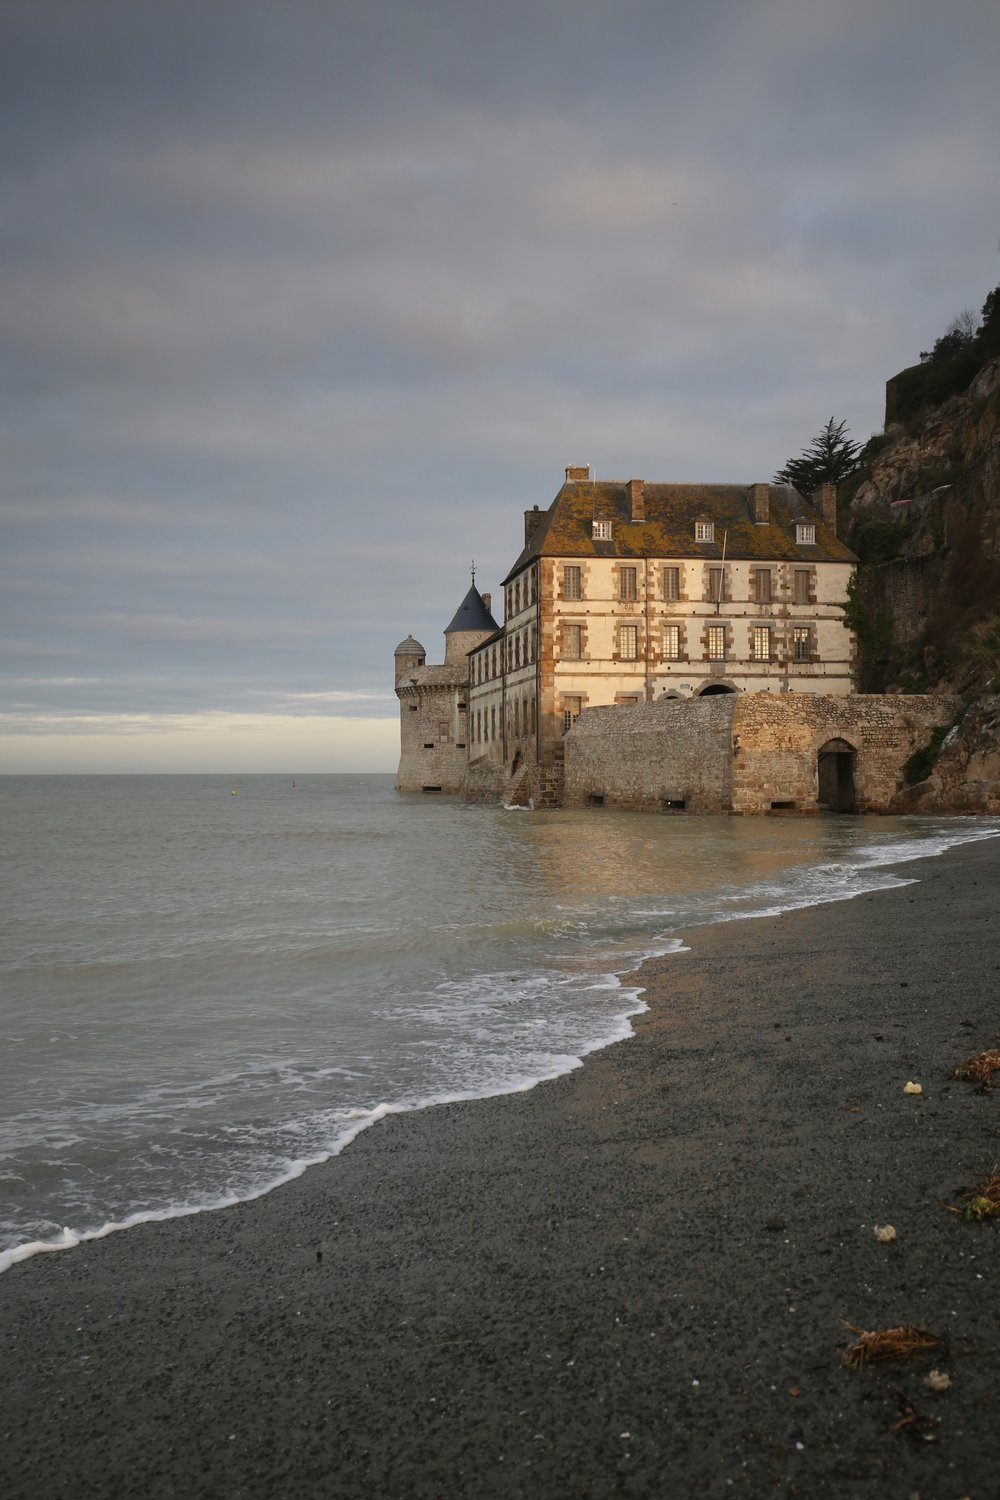 The walls of Mont Saint Michel at high tide - so gorgeous with the sea shore.